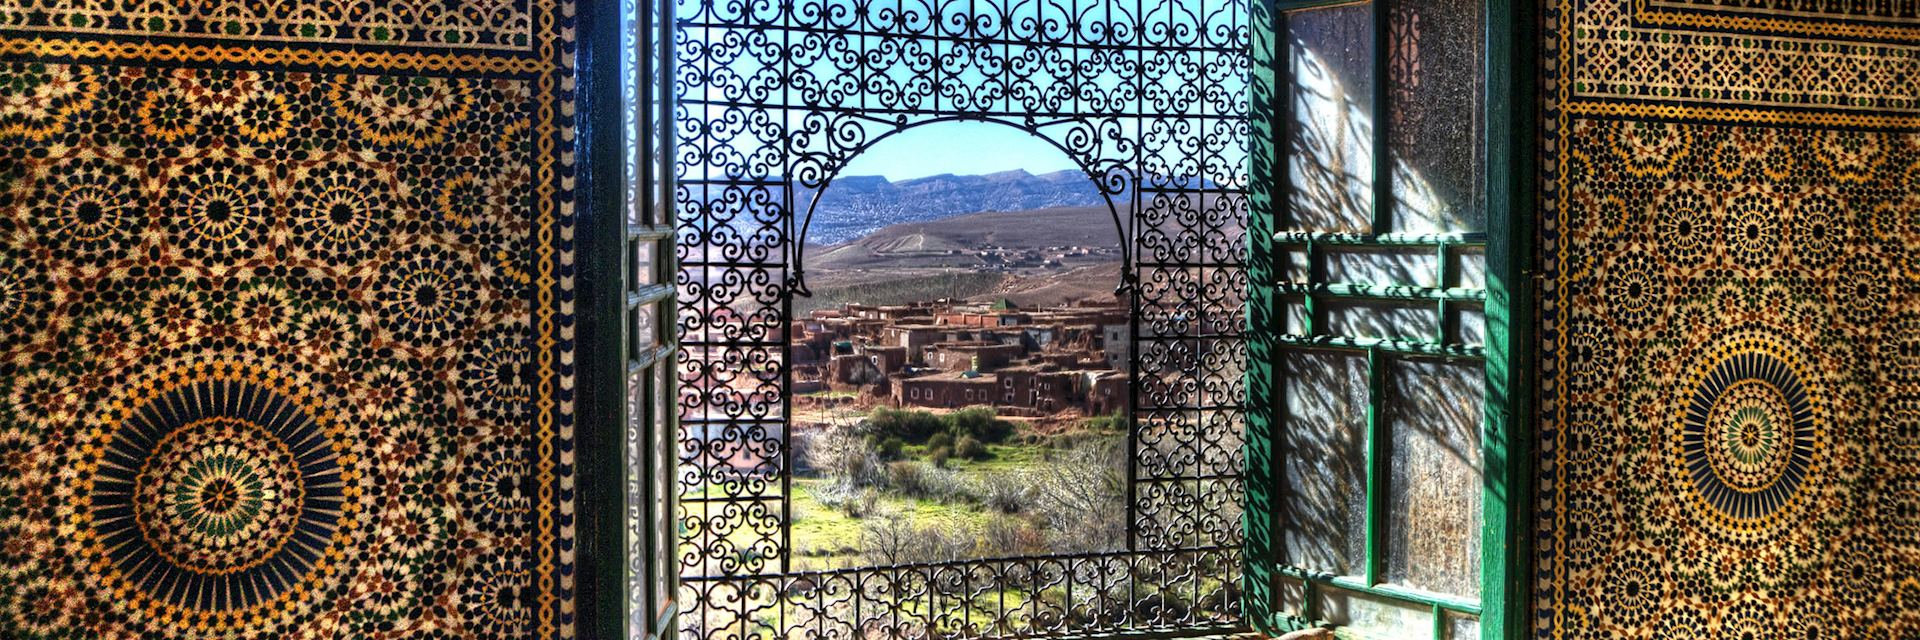 View from Kasbah Telouet